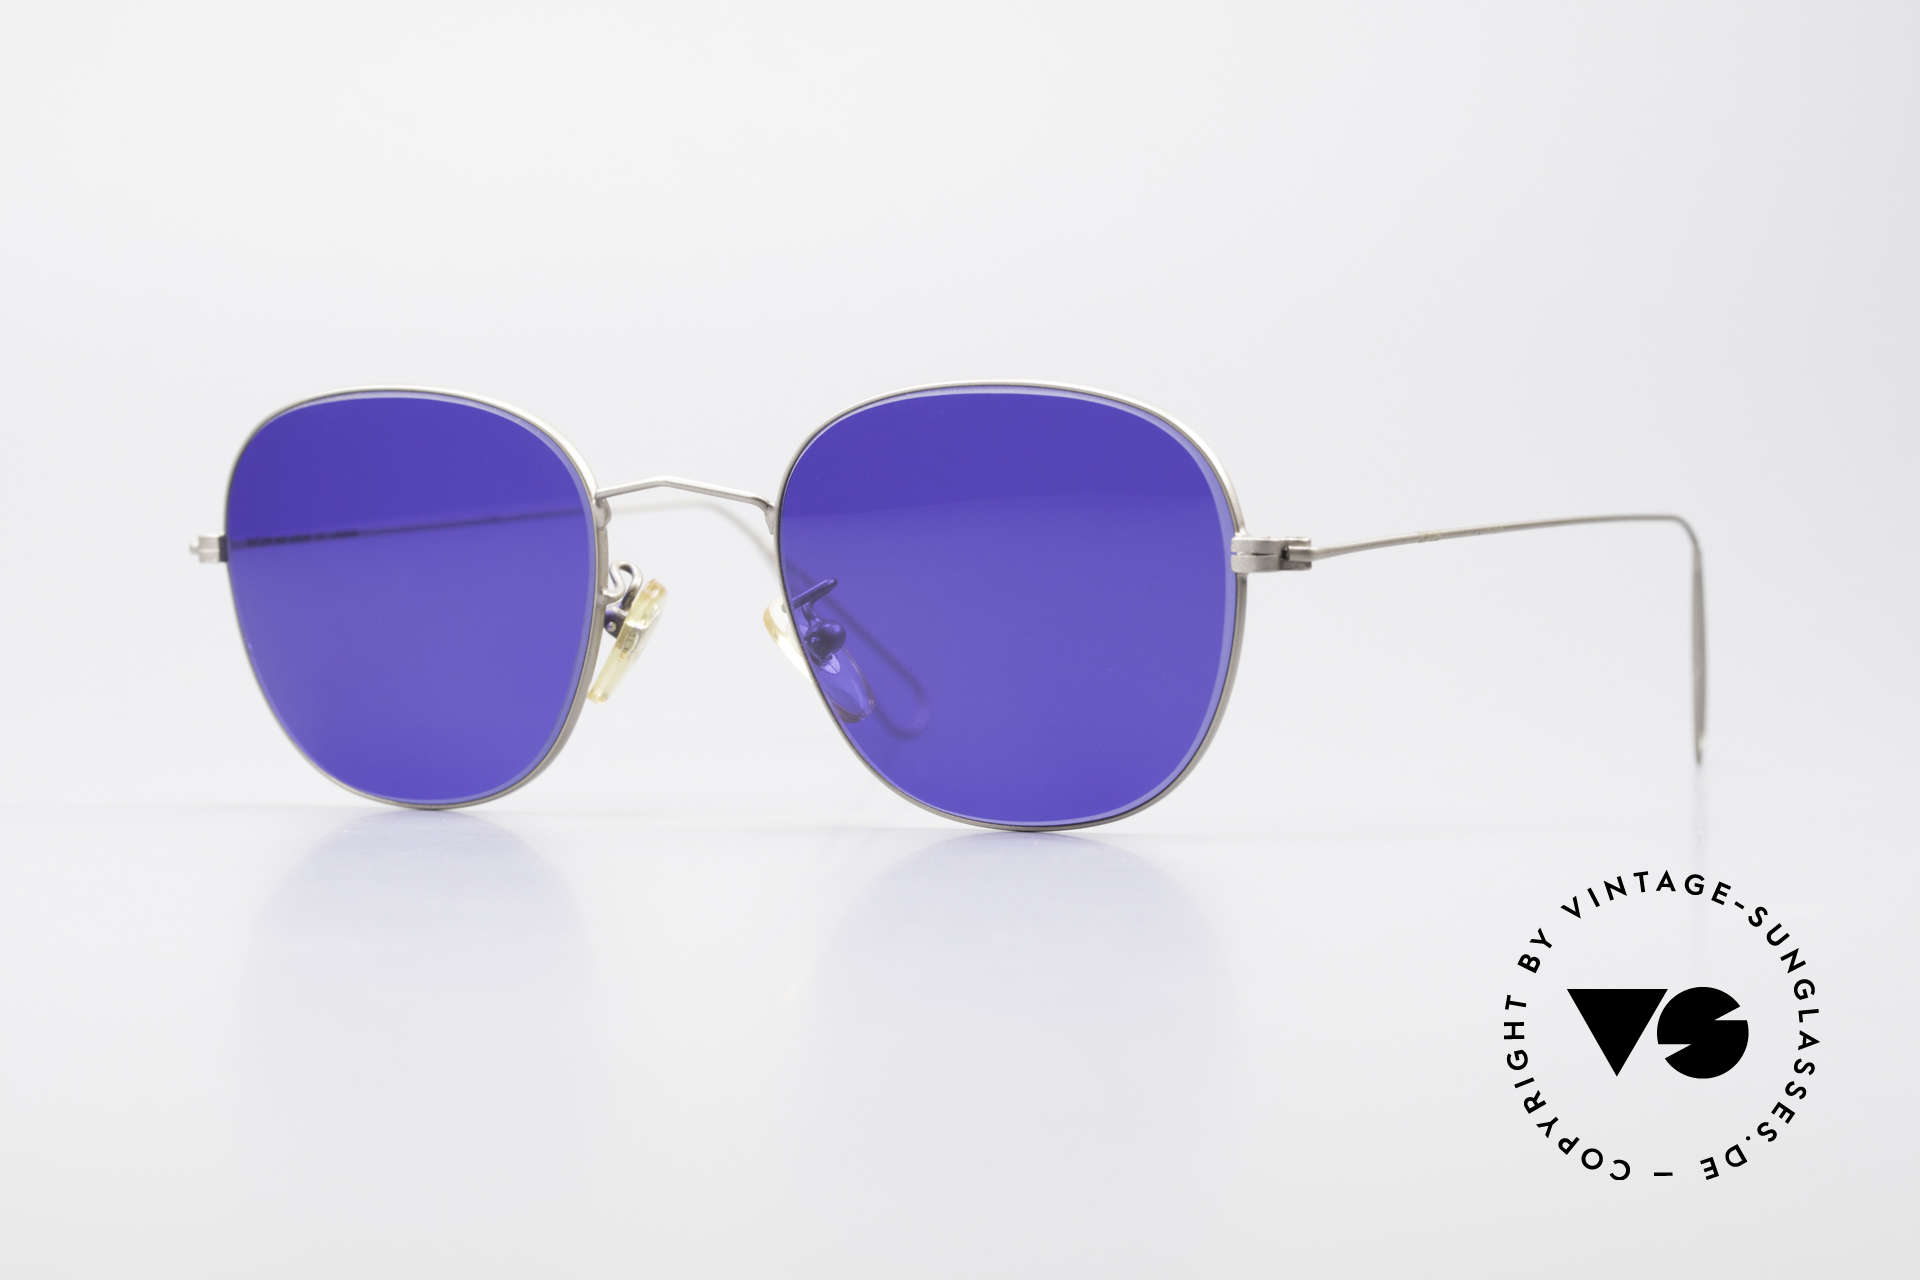 Cutler And Gross 0307 Classic Sunglasses Vintage, CUTLER and GROSS designer shades from the late 90's, Made for Men and Women